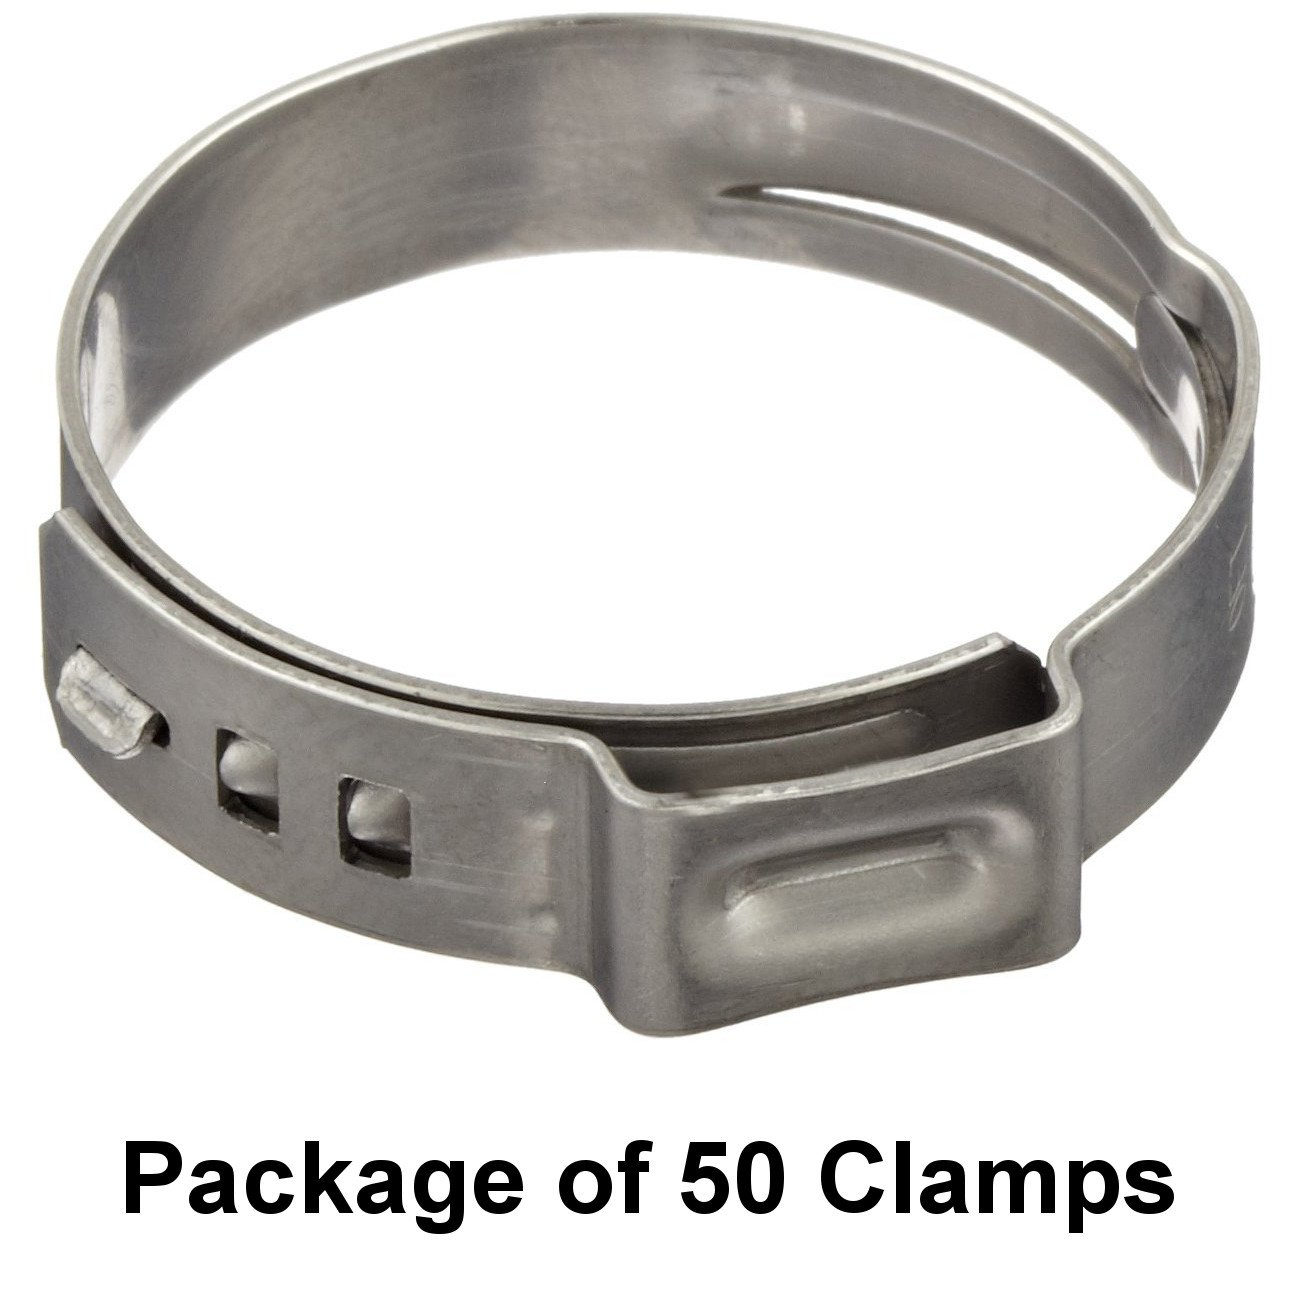 - 36.1 mm 7 mm Band Width Open Clamp ID Range 32.9 mm Pack of 5 One Ear Closed Oetiker 16700046 Stepless Ear Clamp